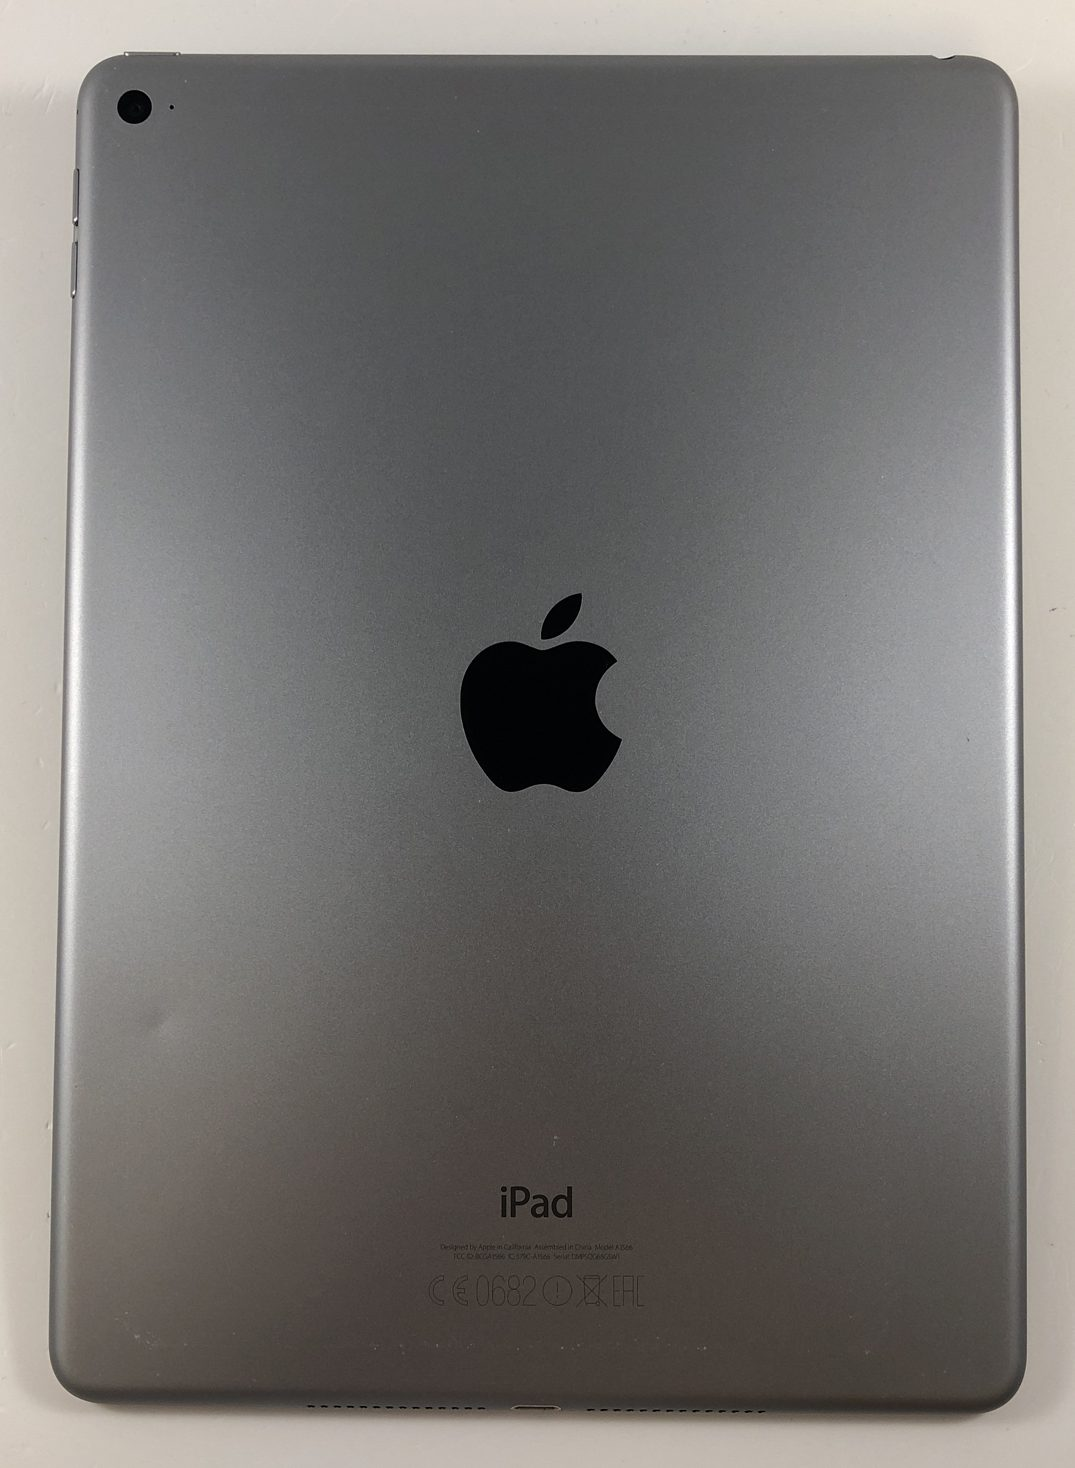 iPad Air 2 Wi-Fi 128GB, 128GB, Space Gray, imagen 2